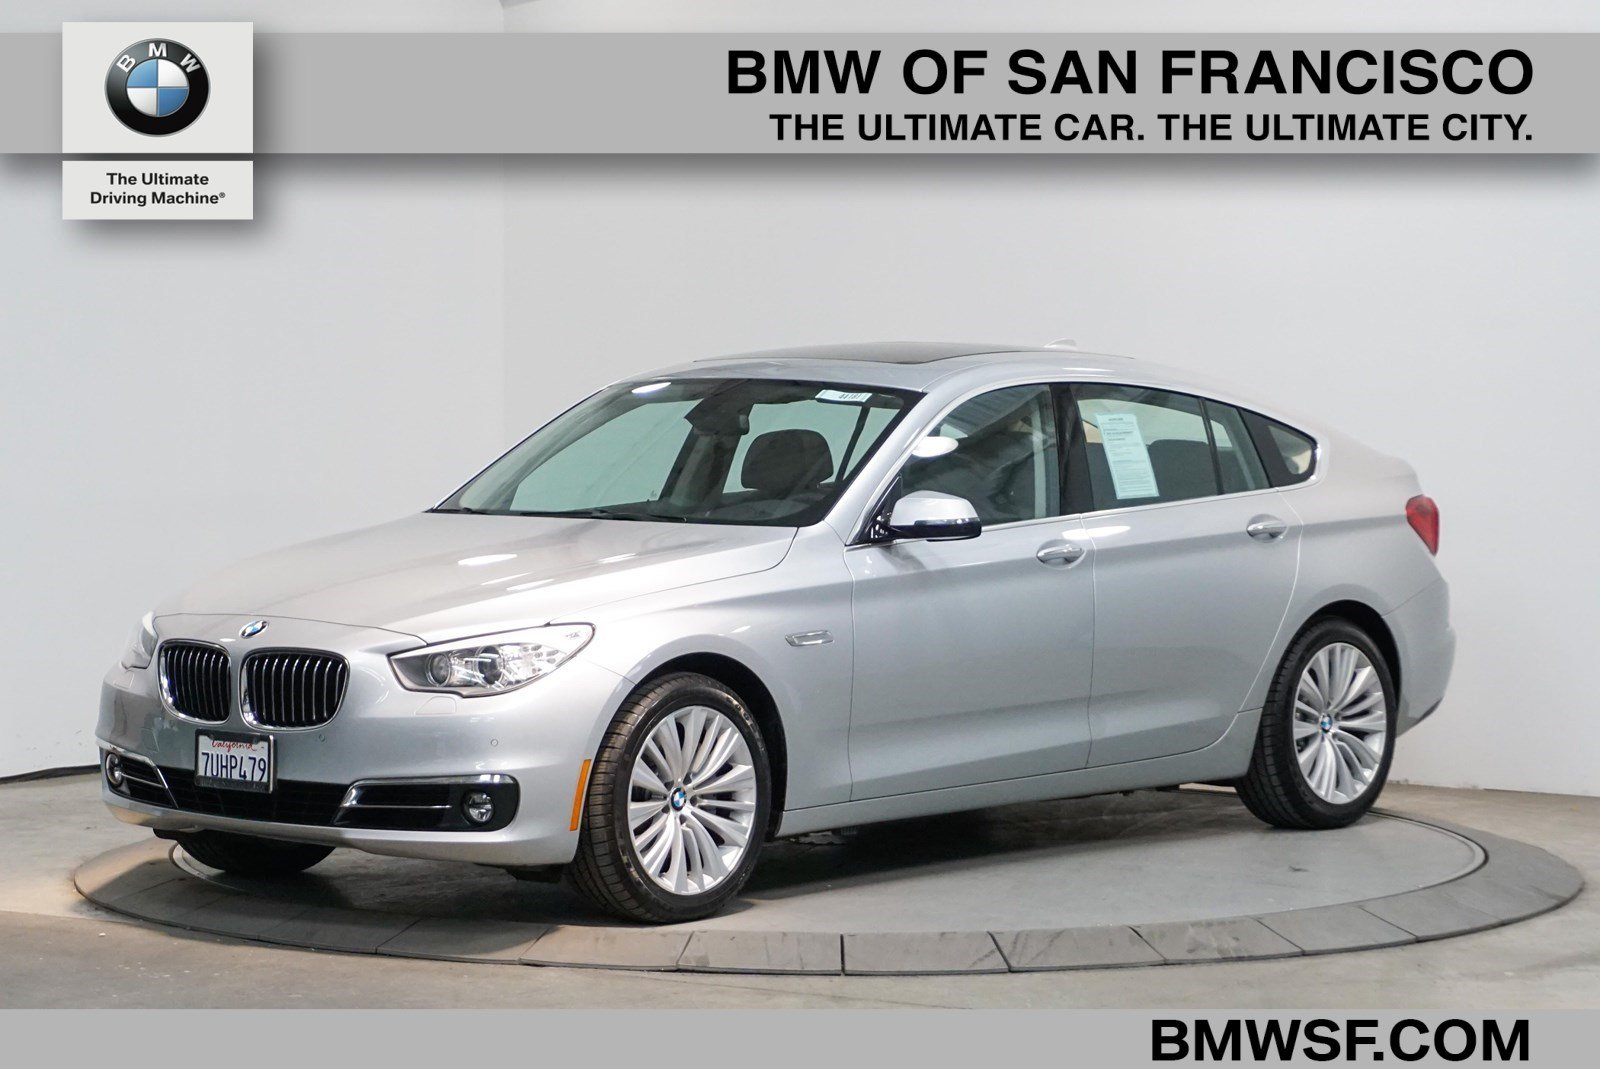 Pre-Owned 2016 BMW 5 Series Gran Turismo 535i